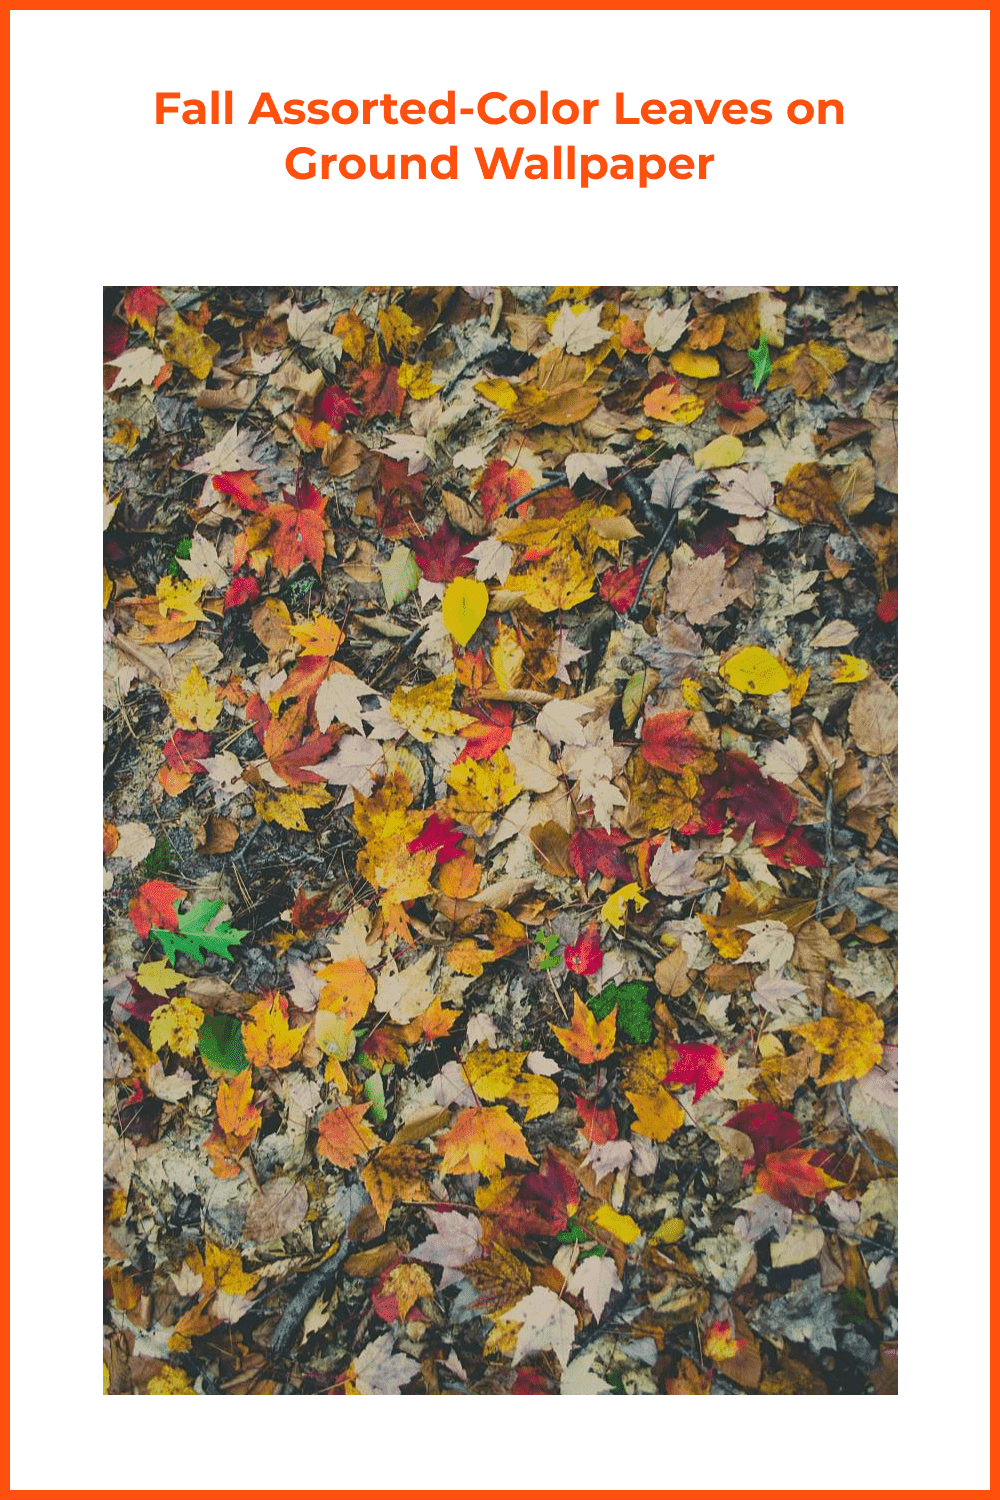 Multi-colored leaves on ground wallpaper